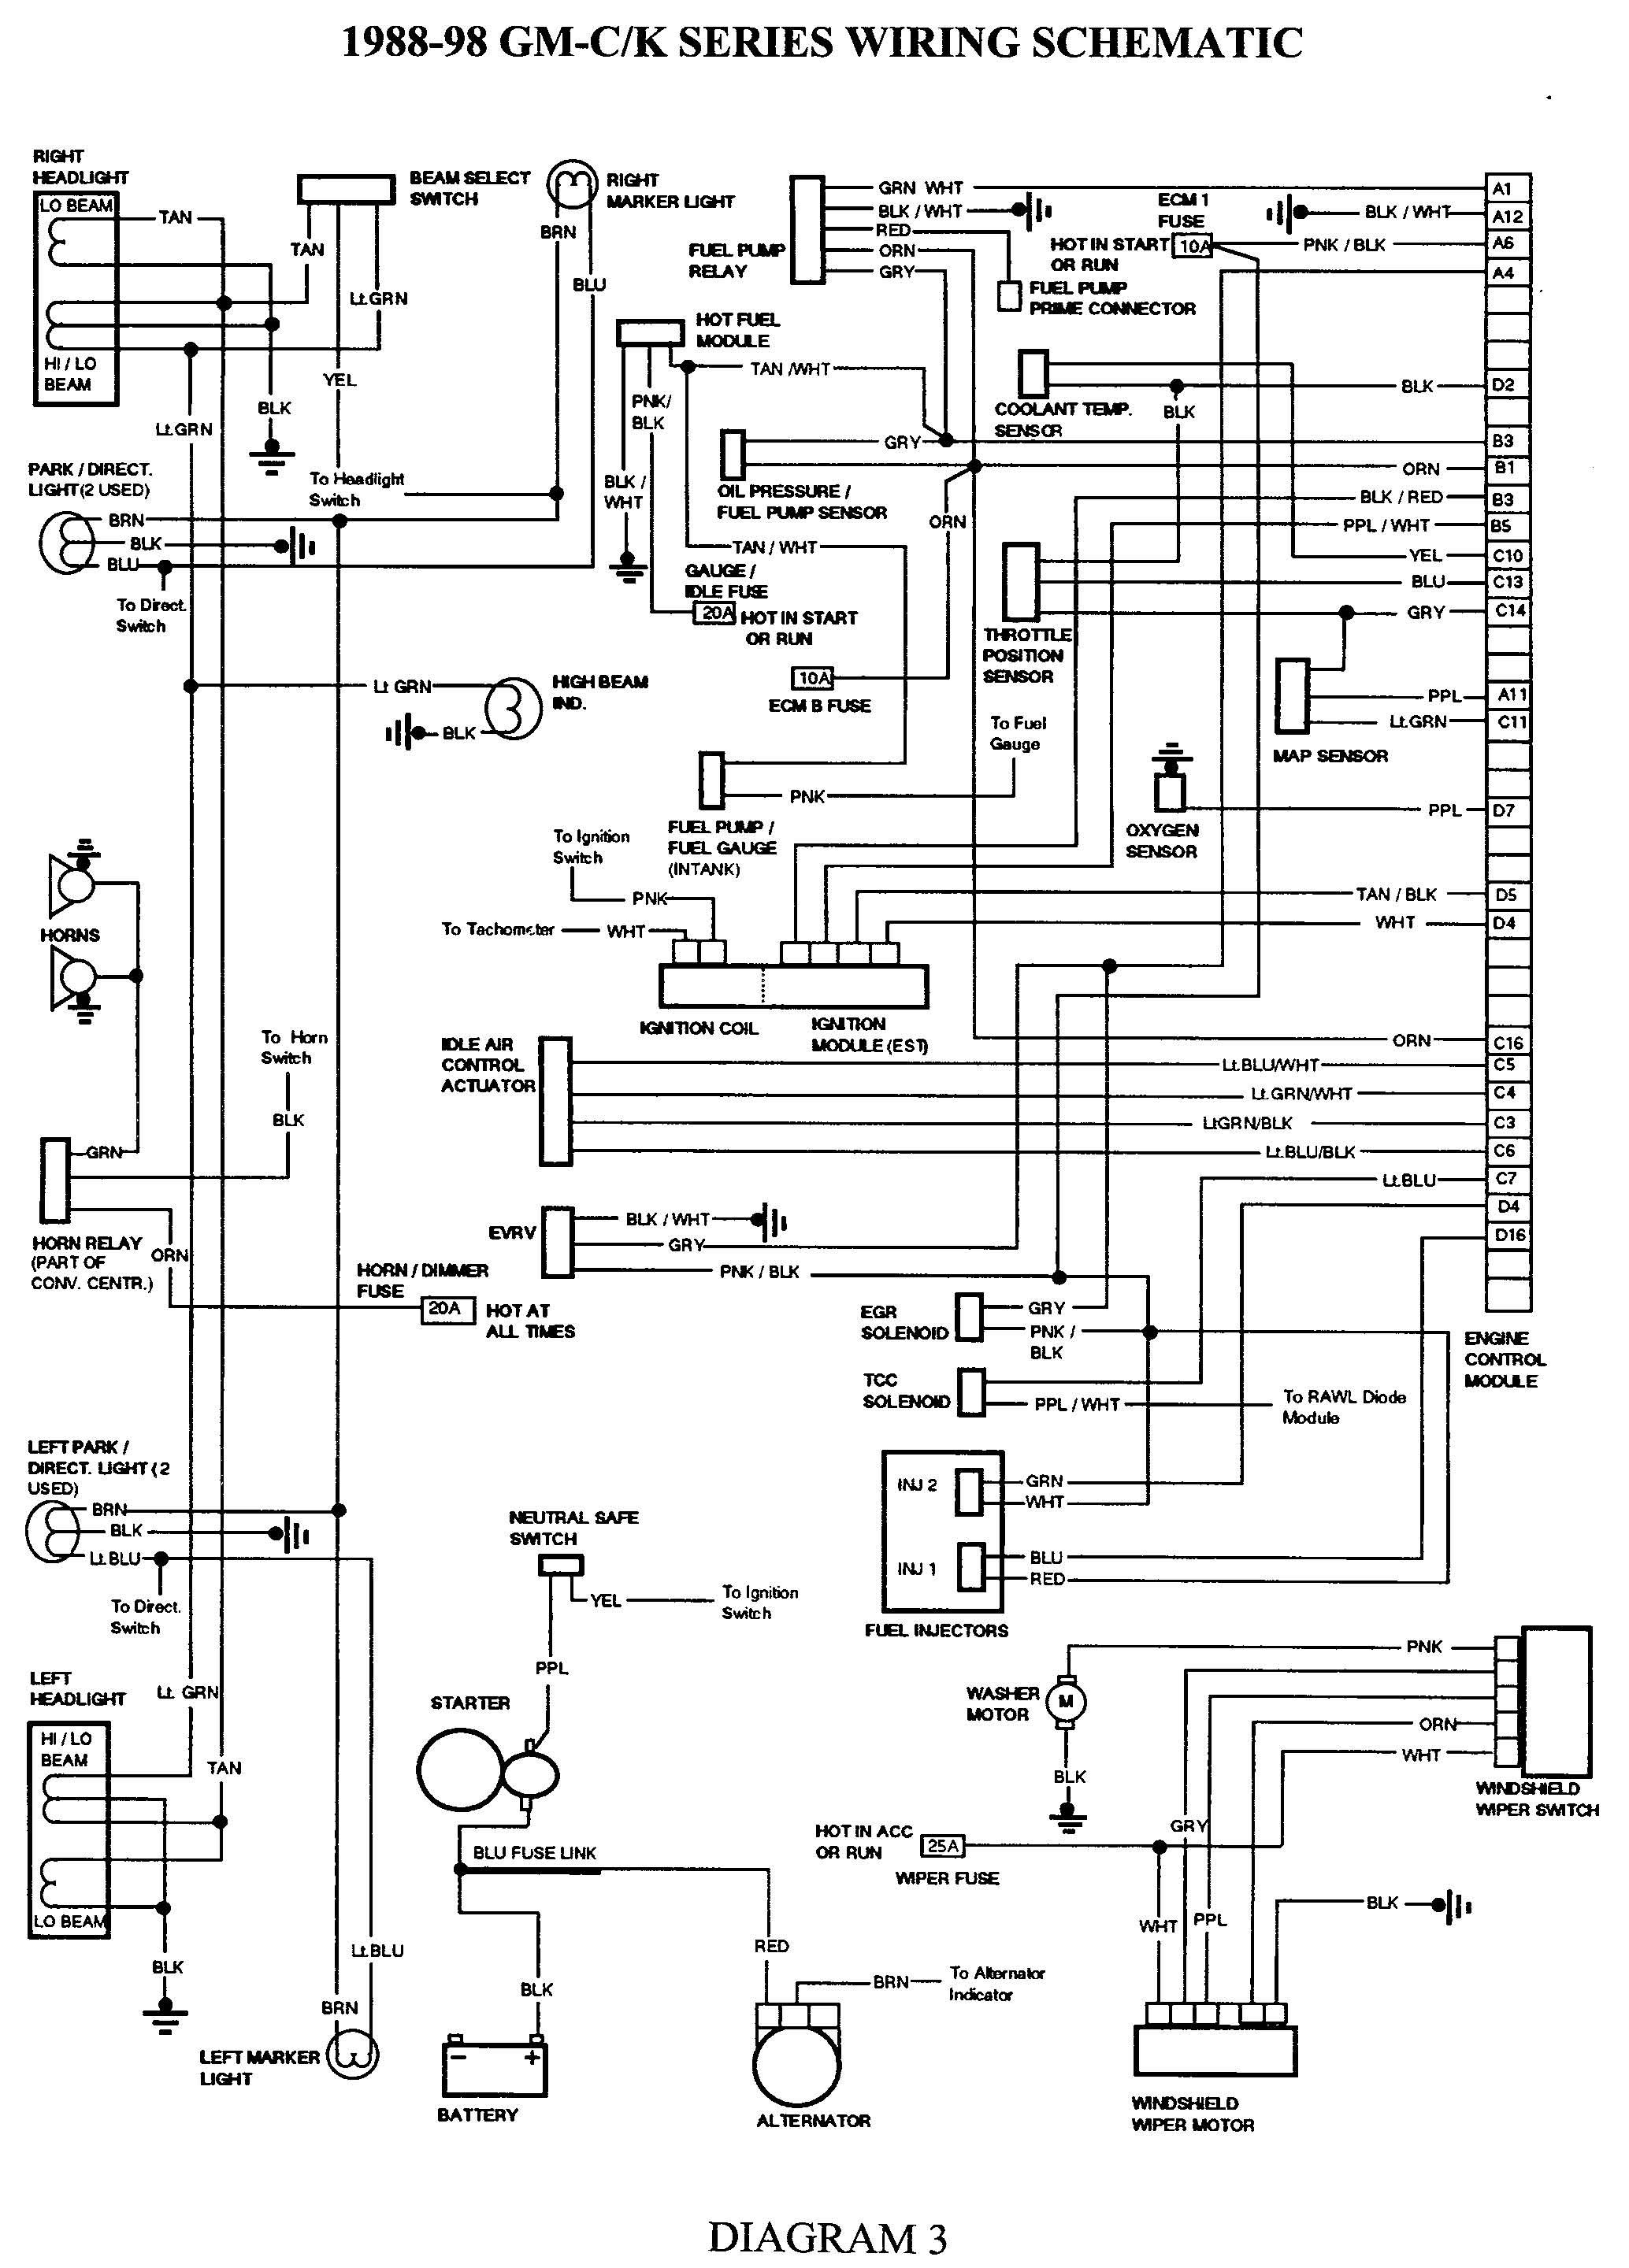 gmc truck wiring diagrams on gm wiring harness diagram 88 98 kc 2008 silverado fuse diagram 2009 chevy silverado wiring diagram gauges [ 2068 x 2880 Pixel ]